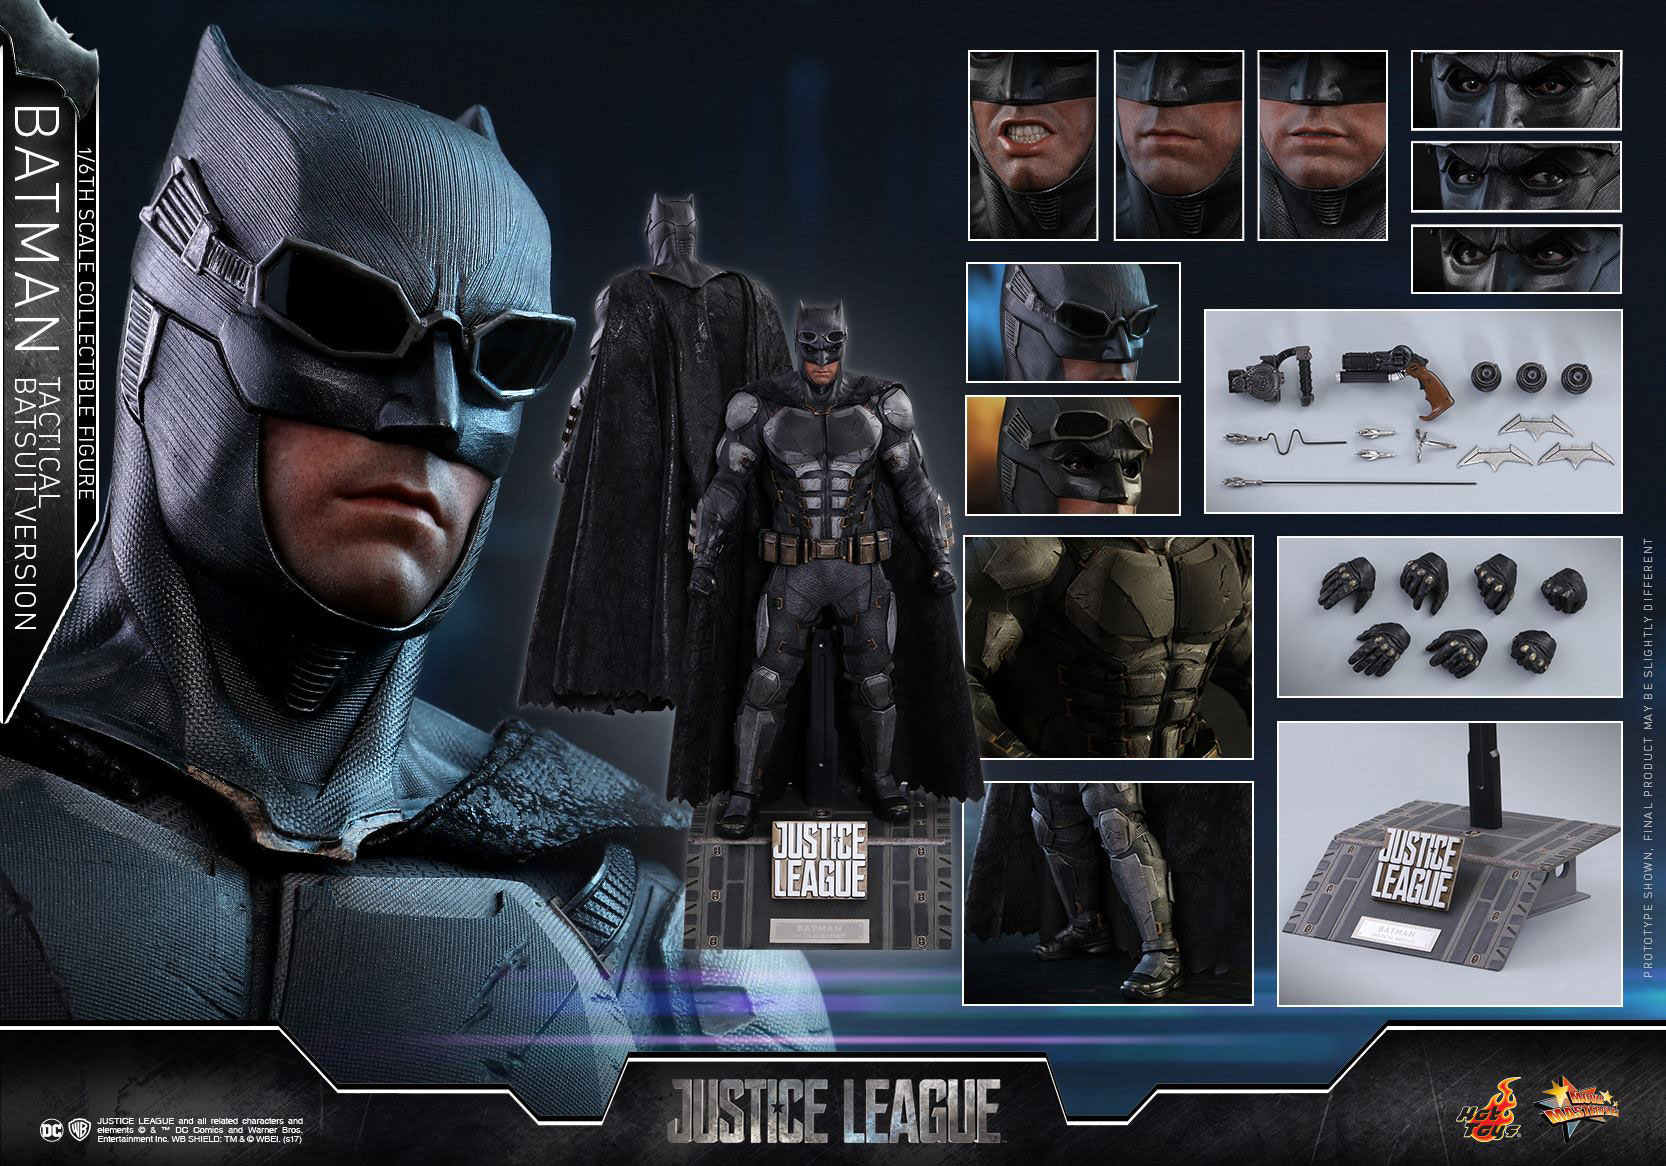 justice-league-batman-tactical-suit-hot-toys-figure-4